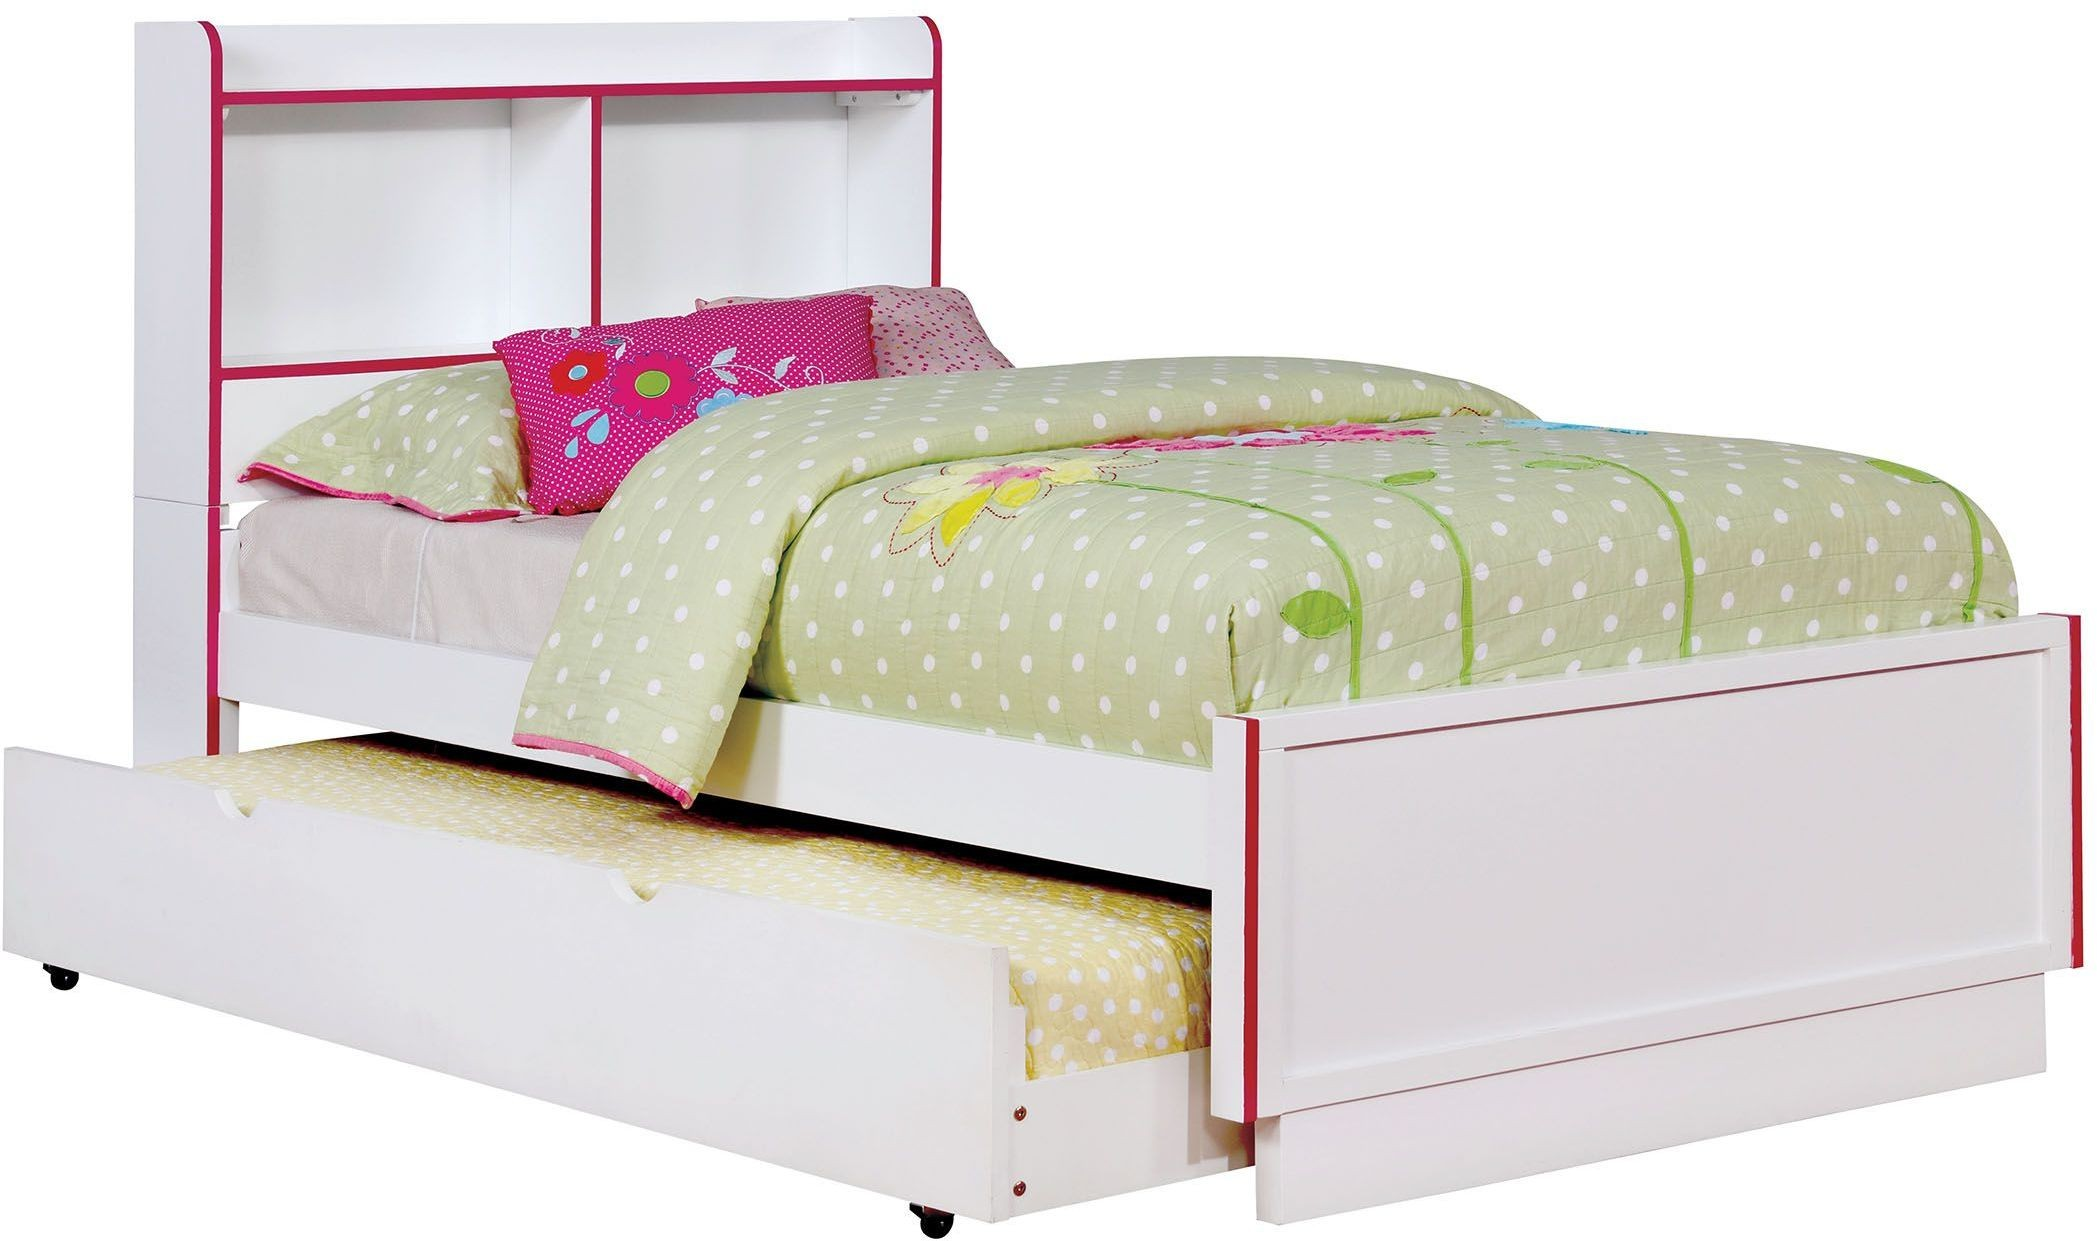 Bobbi Pink and White Twin Panel Bed CM7852PK T BED